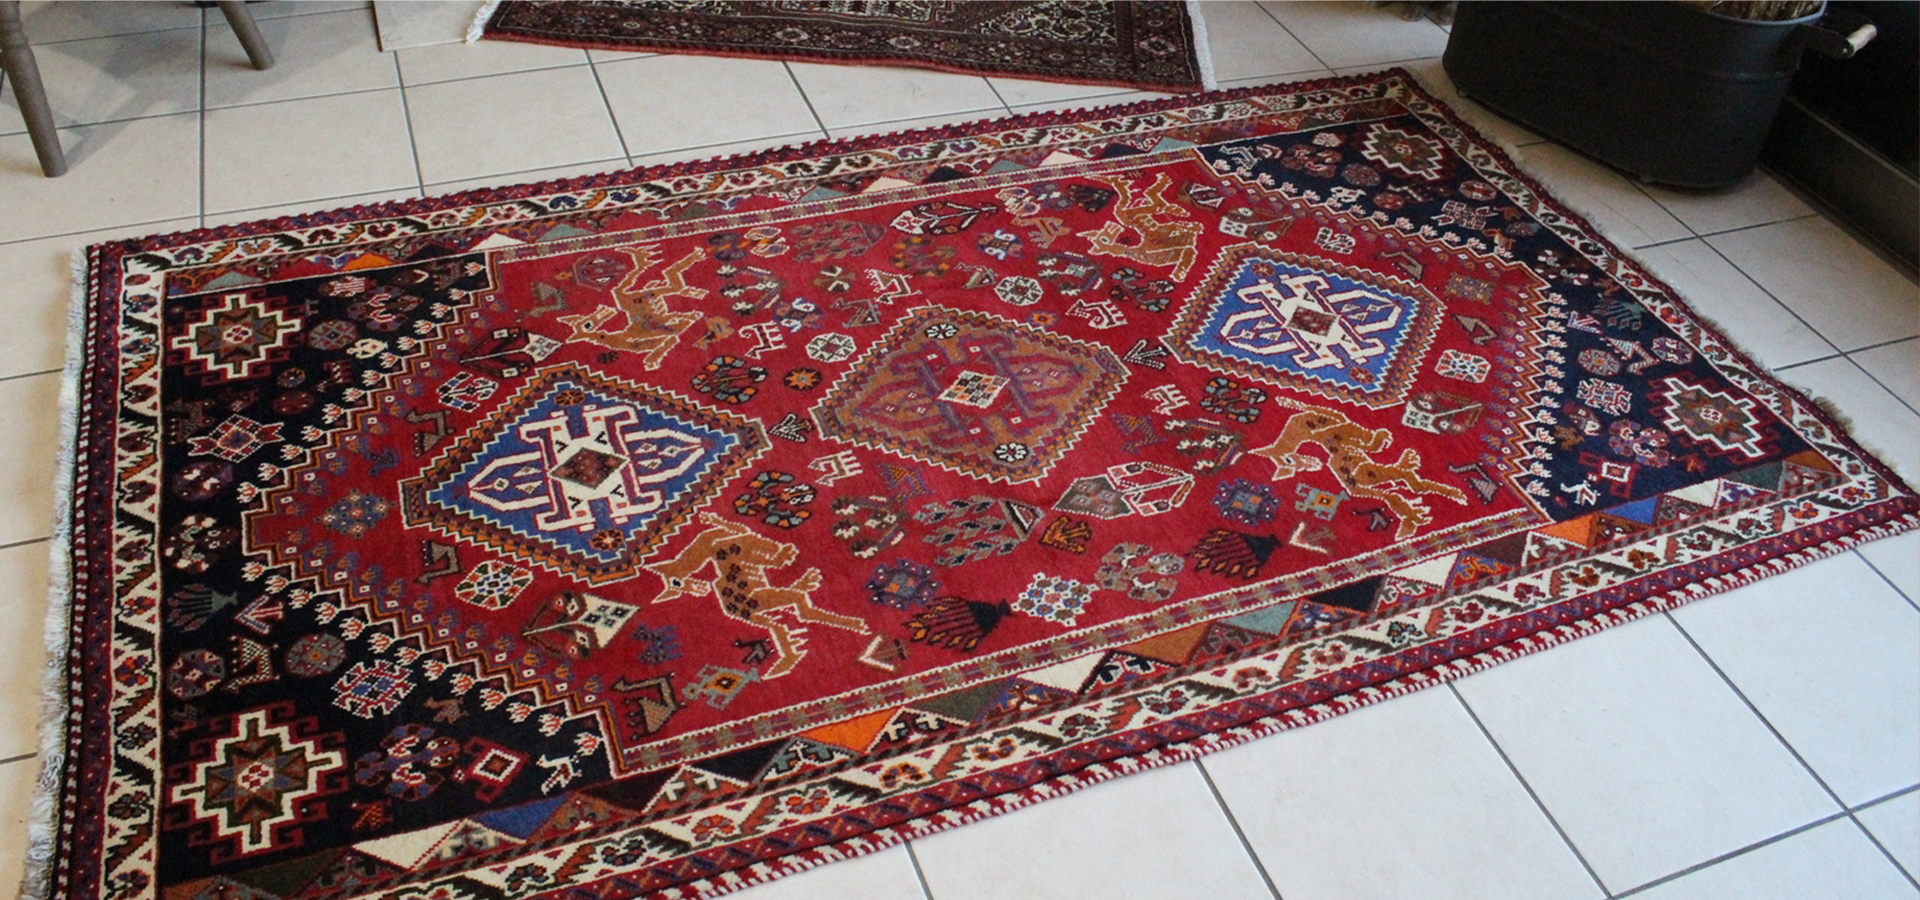 About Tribal Rugs